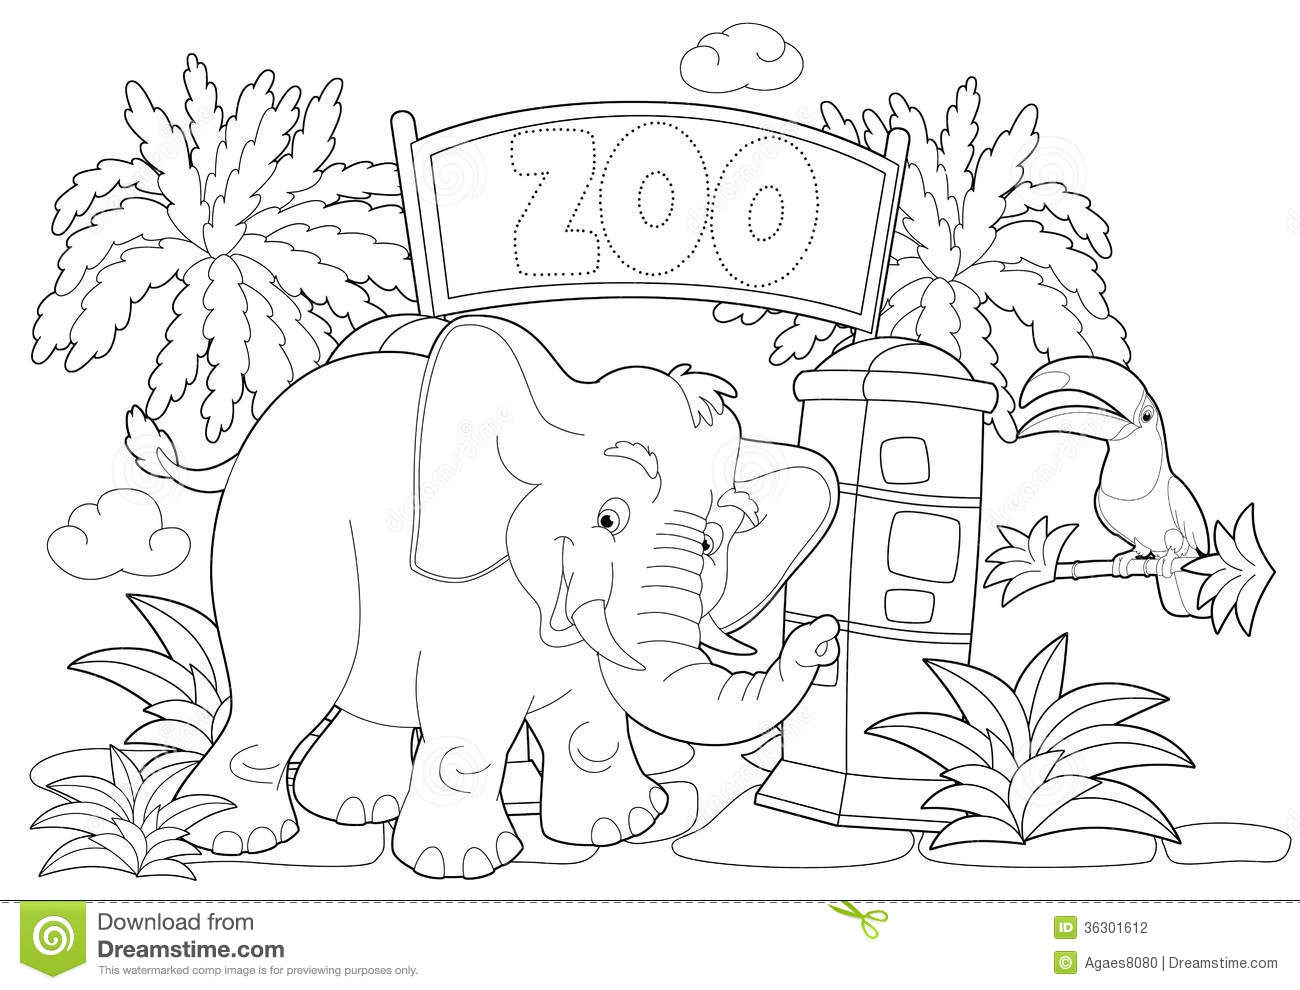 Coloring Page The Zoo Illustration For The Children Stock